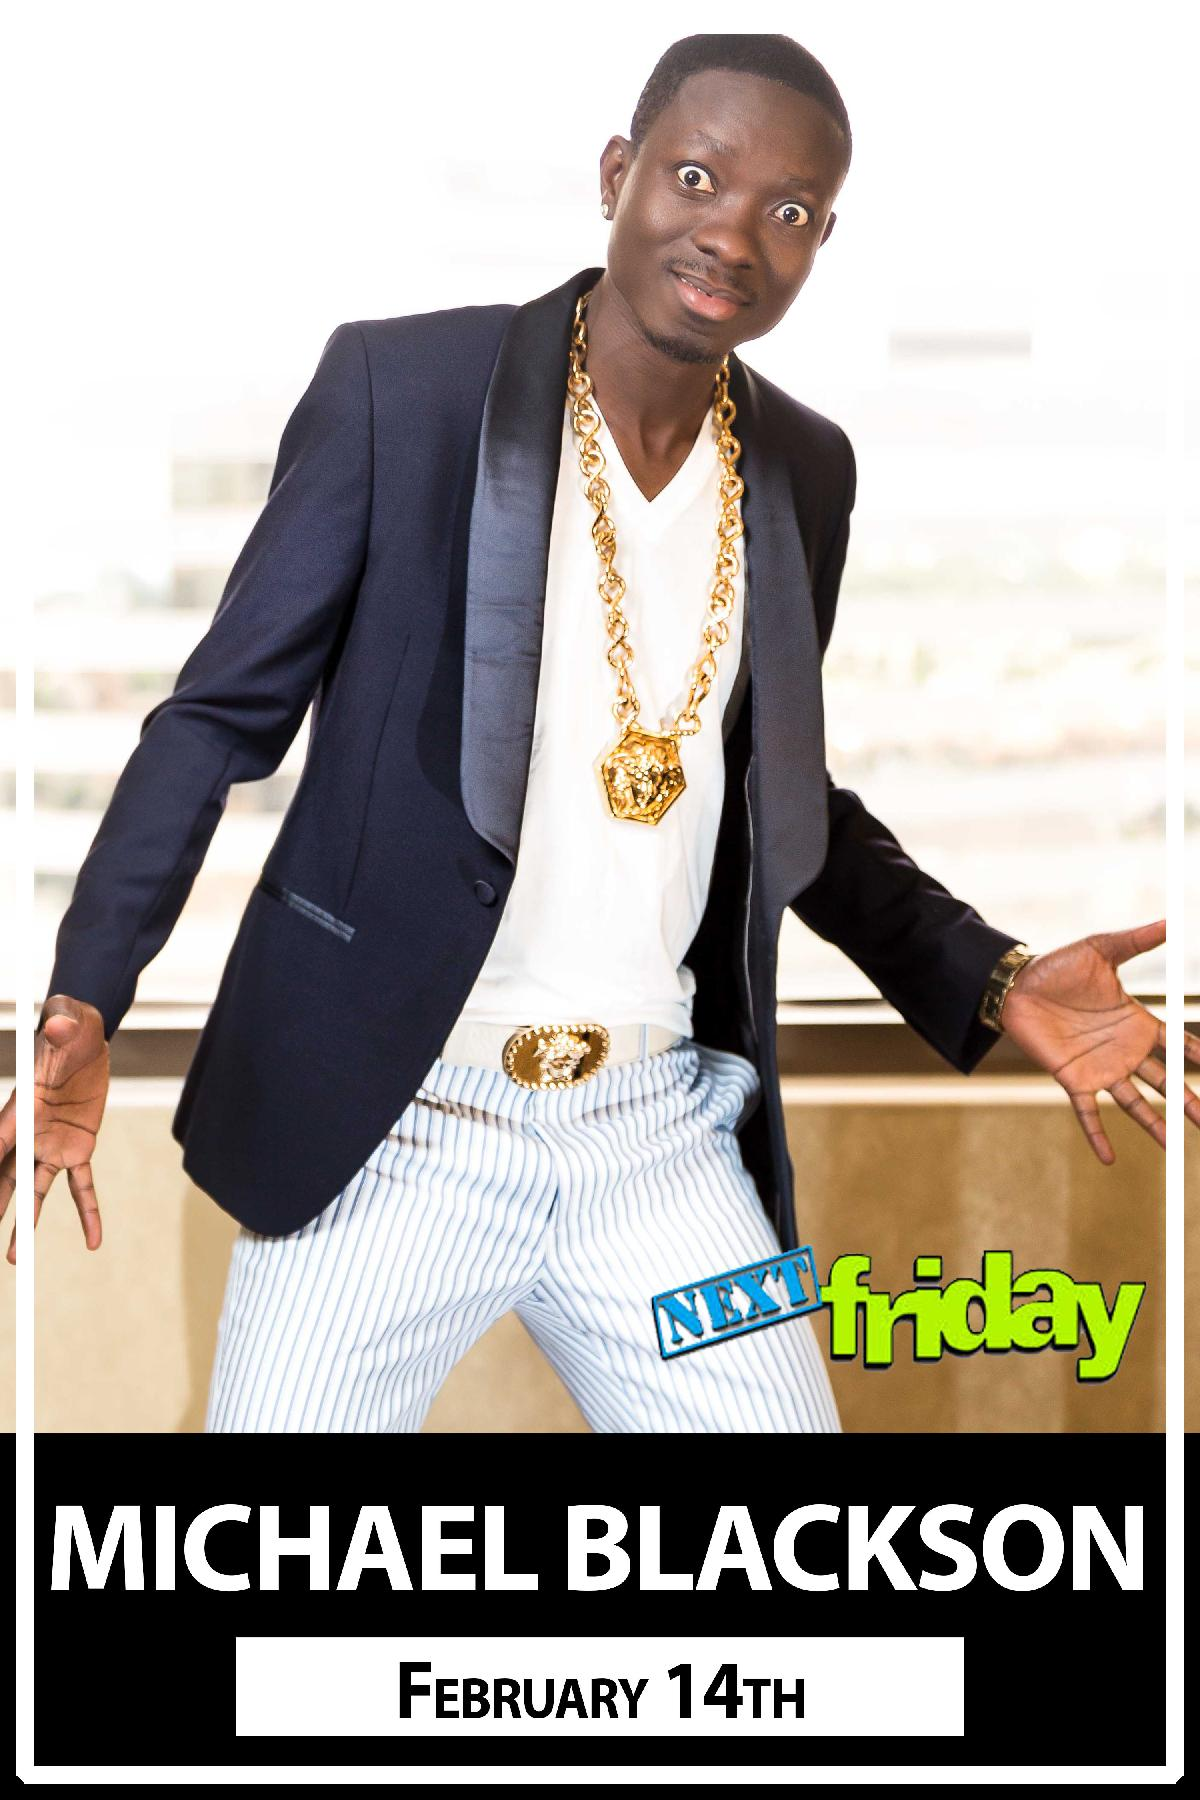 Michael Blackson The African King of Comedy live at Zanies Comedy Club Nashville Feburary 14, 2016